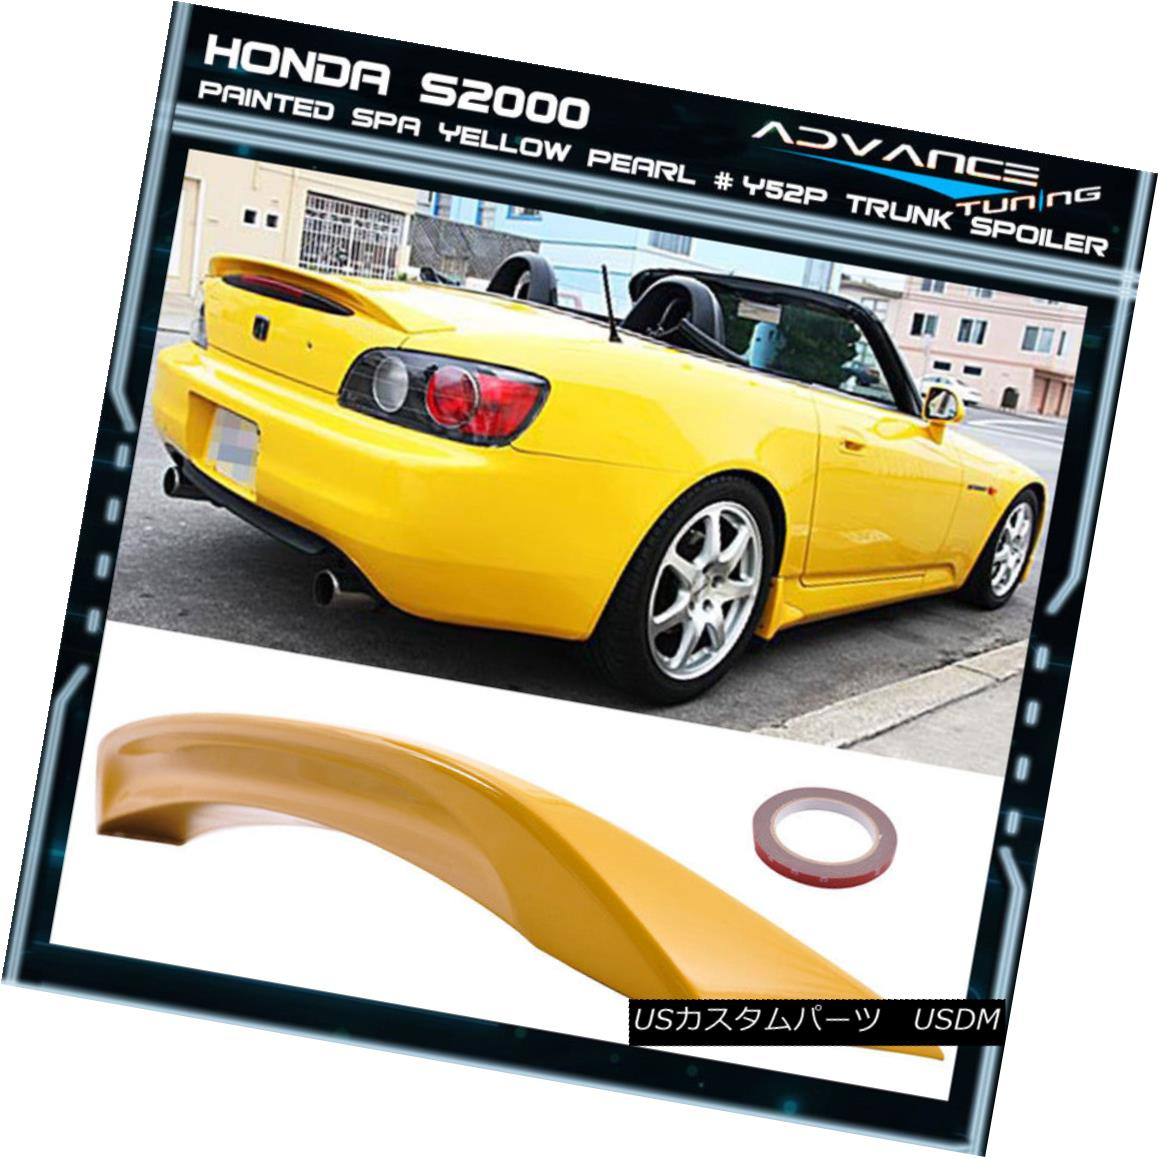 エアロパーツ 01-03 S2000 Ap1 2DR ABS Trunk Spoiler OEM Painted Color Spa Yellow Pearl # Y52P 01-03 S2000 Ap1 2DR ABSトランクスポイラーOEM塗装カラースパイエローパール#Y52P